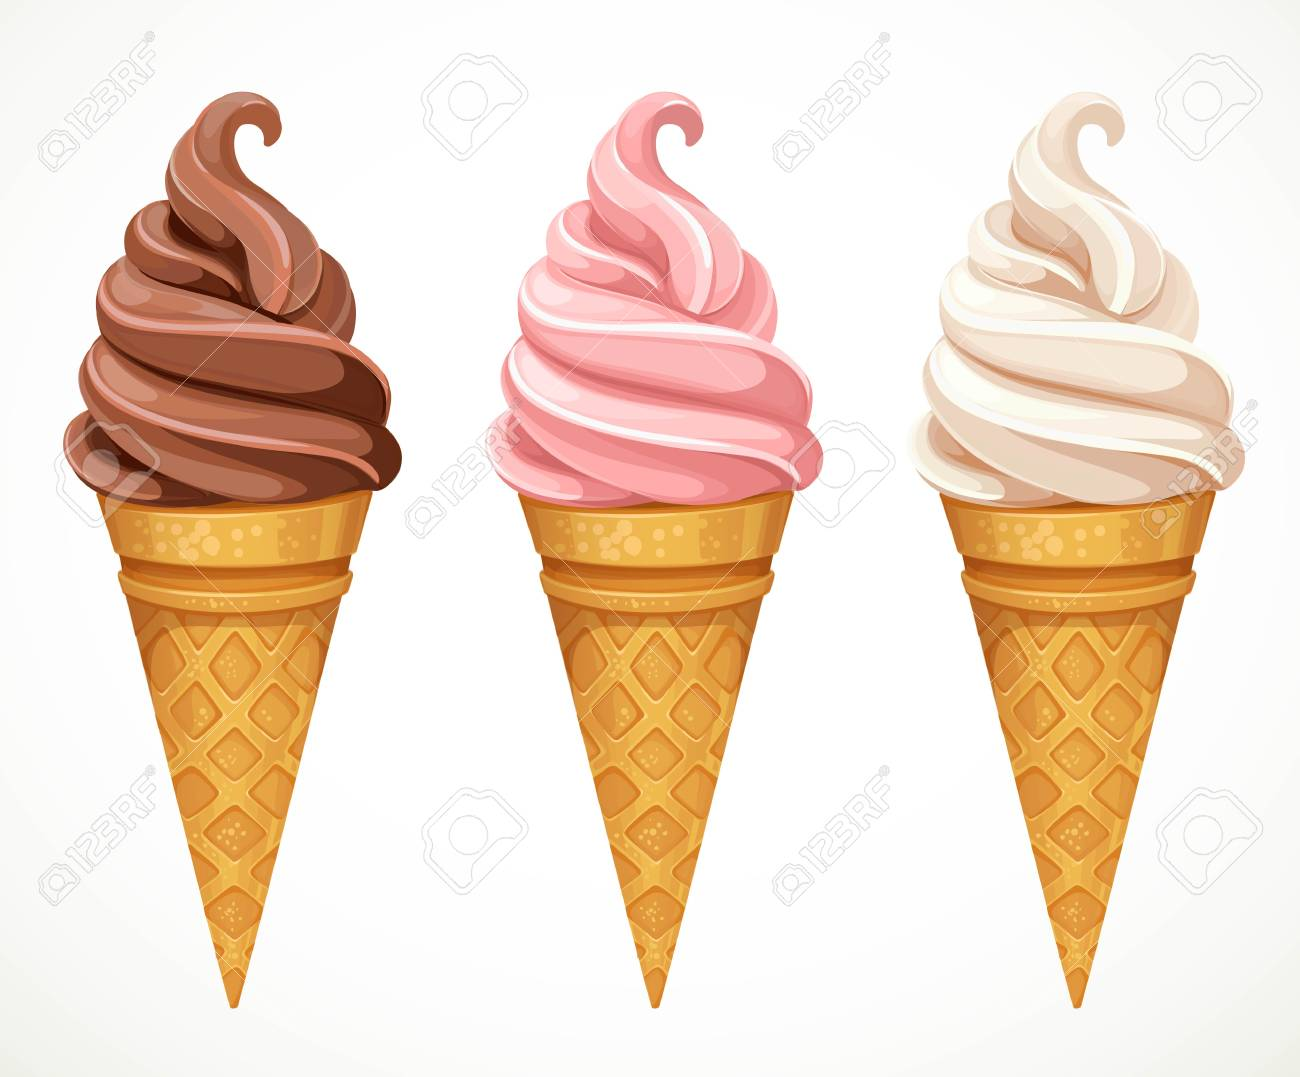 Soft ice-cream dofferent tastes in cone design elements for summer season isolated on a white background - 111789923